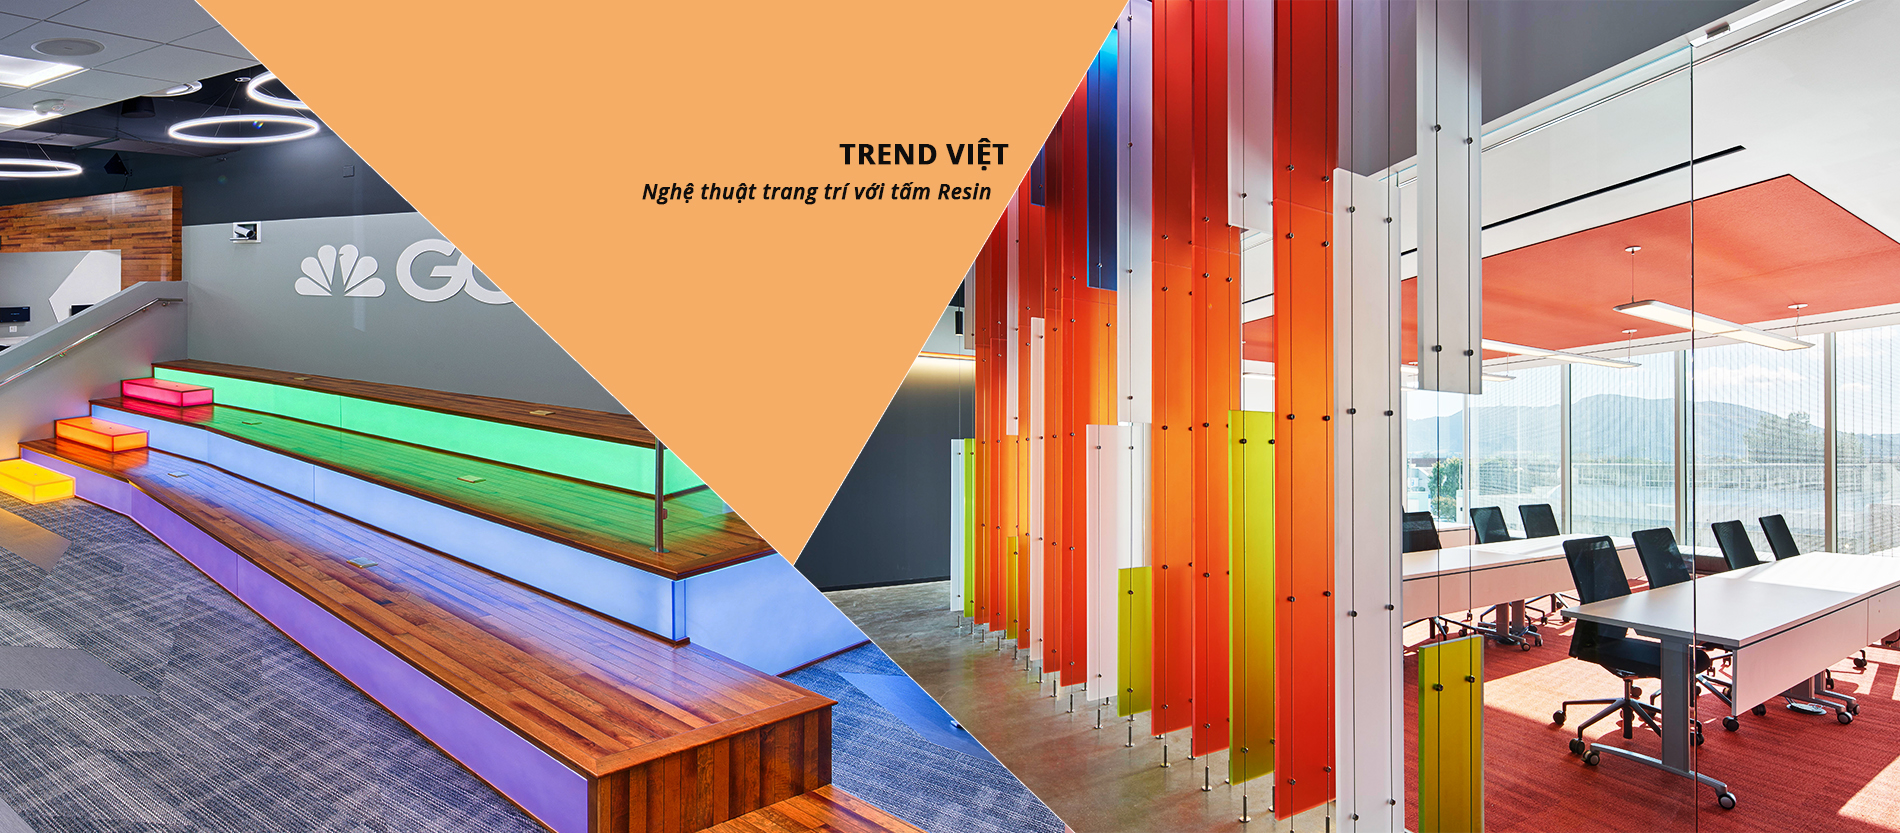 Trend Việt